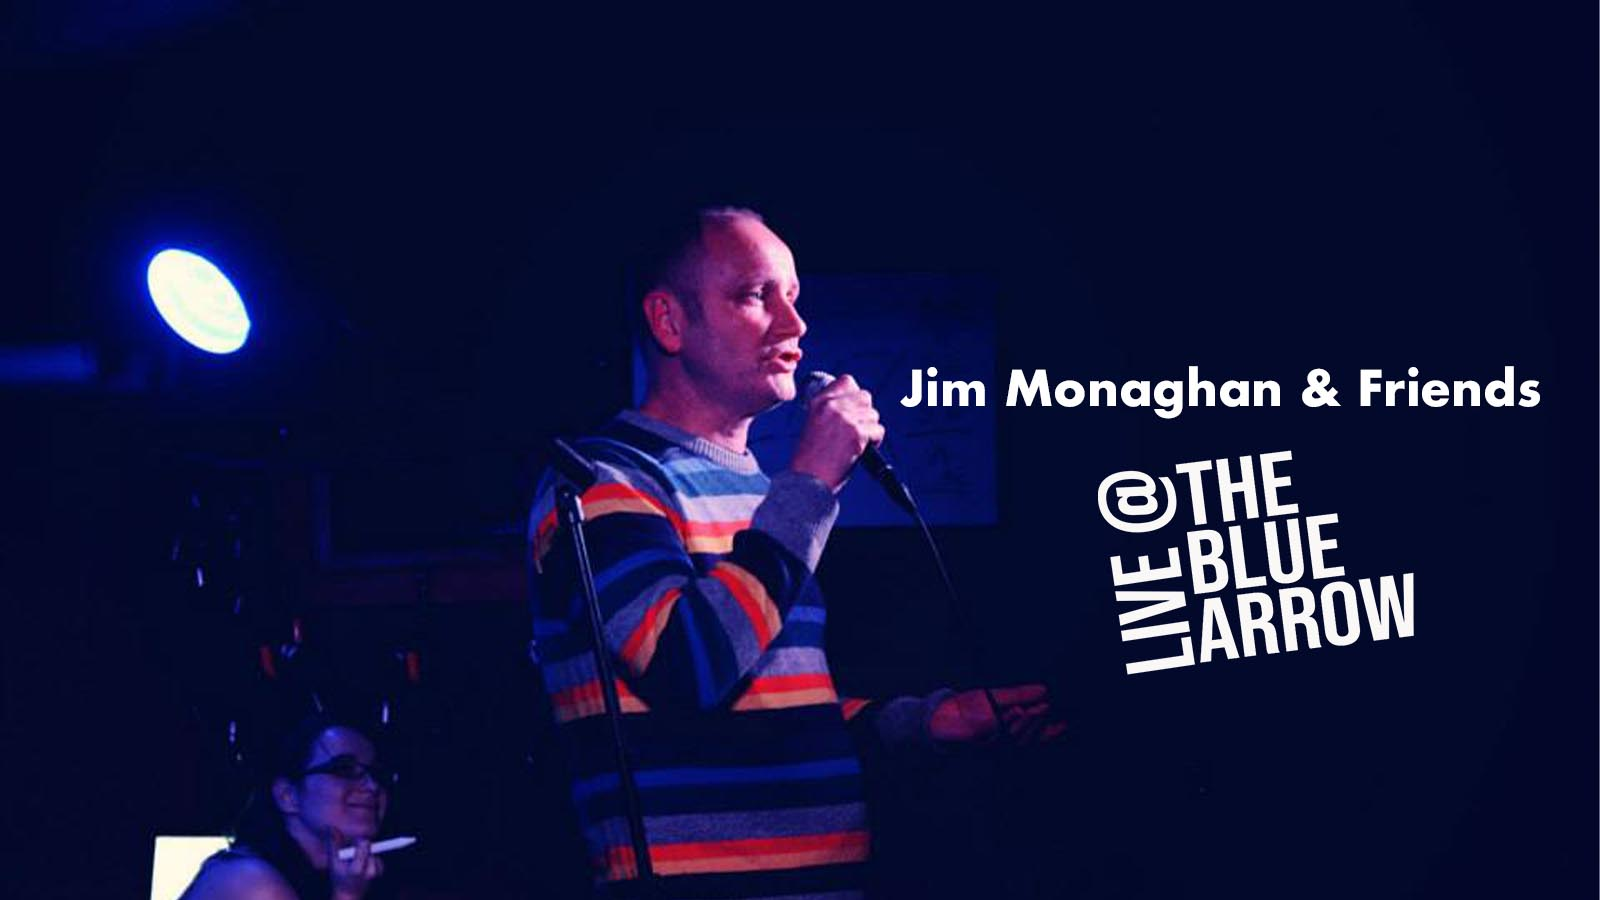 Jim Monaghan & Friends Live at The Blue Arrow